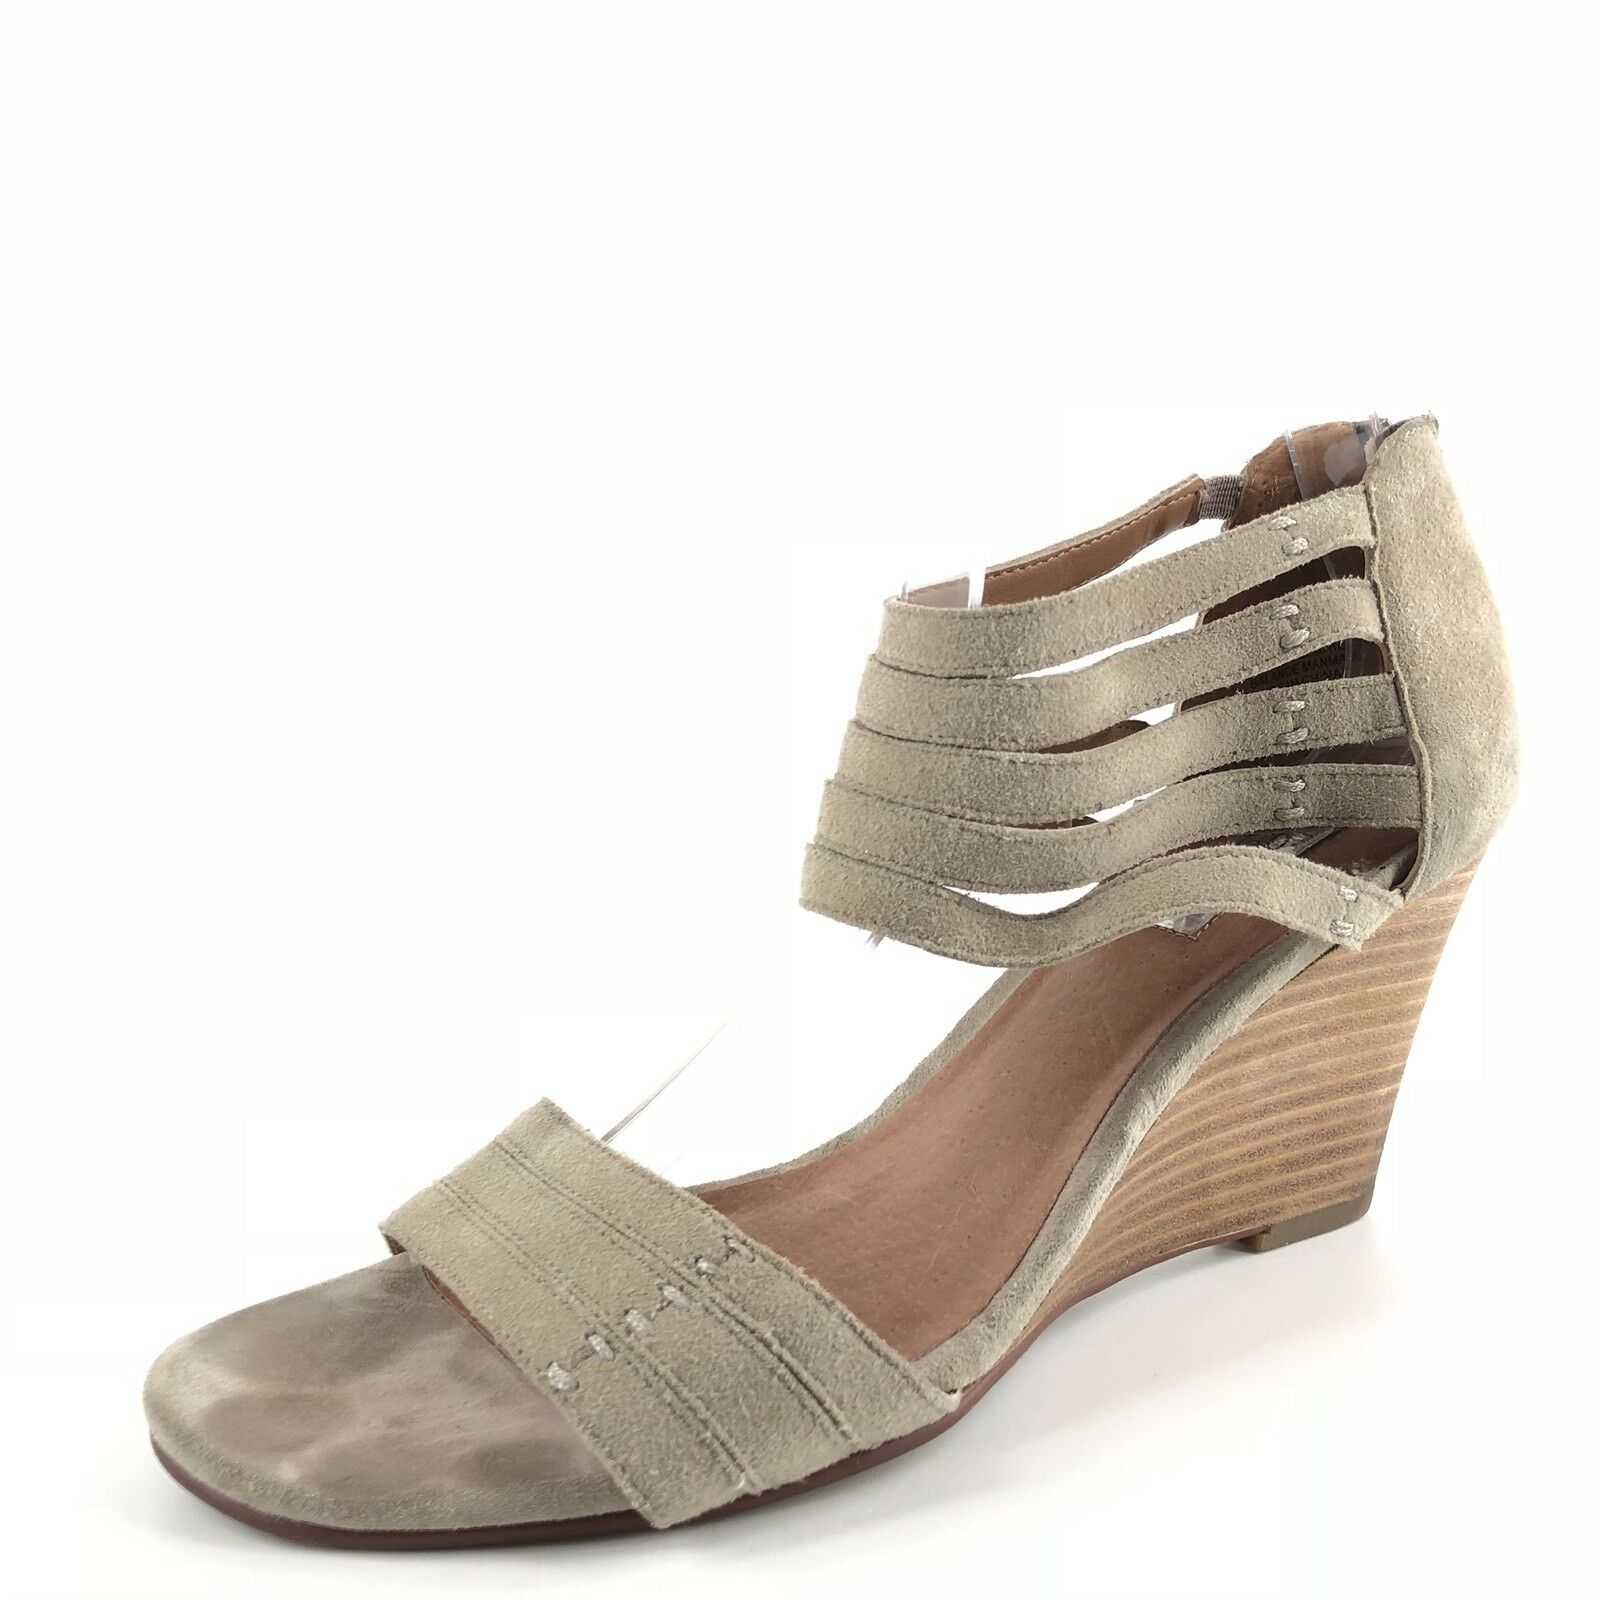 Halogen Kyla Taupe Leather Suede Sandal Wedges Women's Size 7.5 M